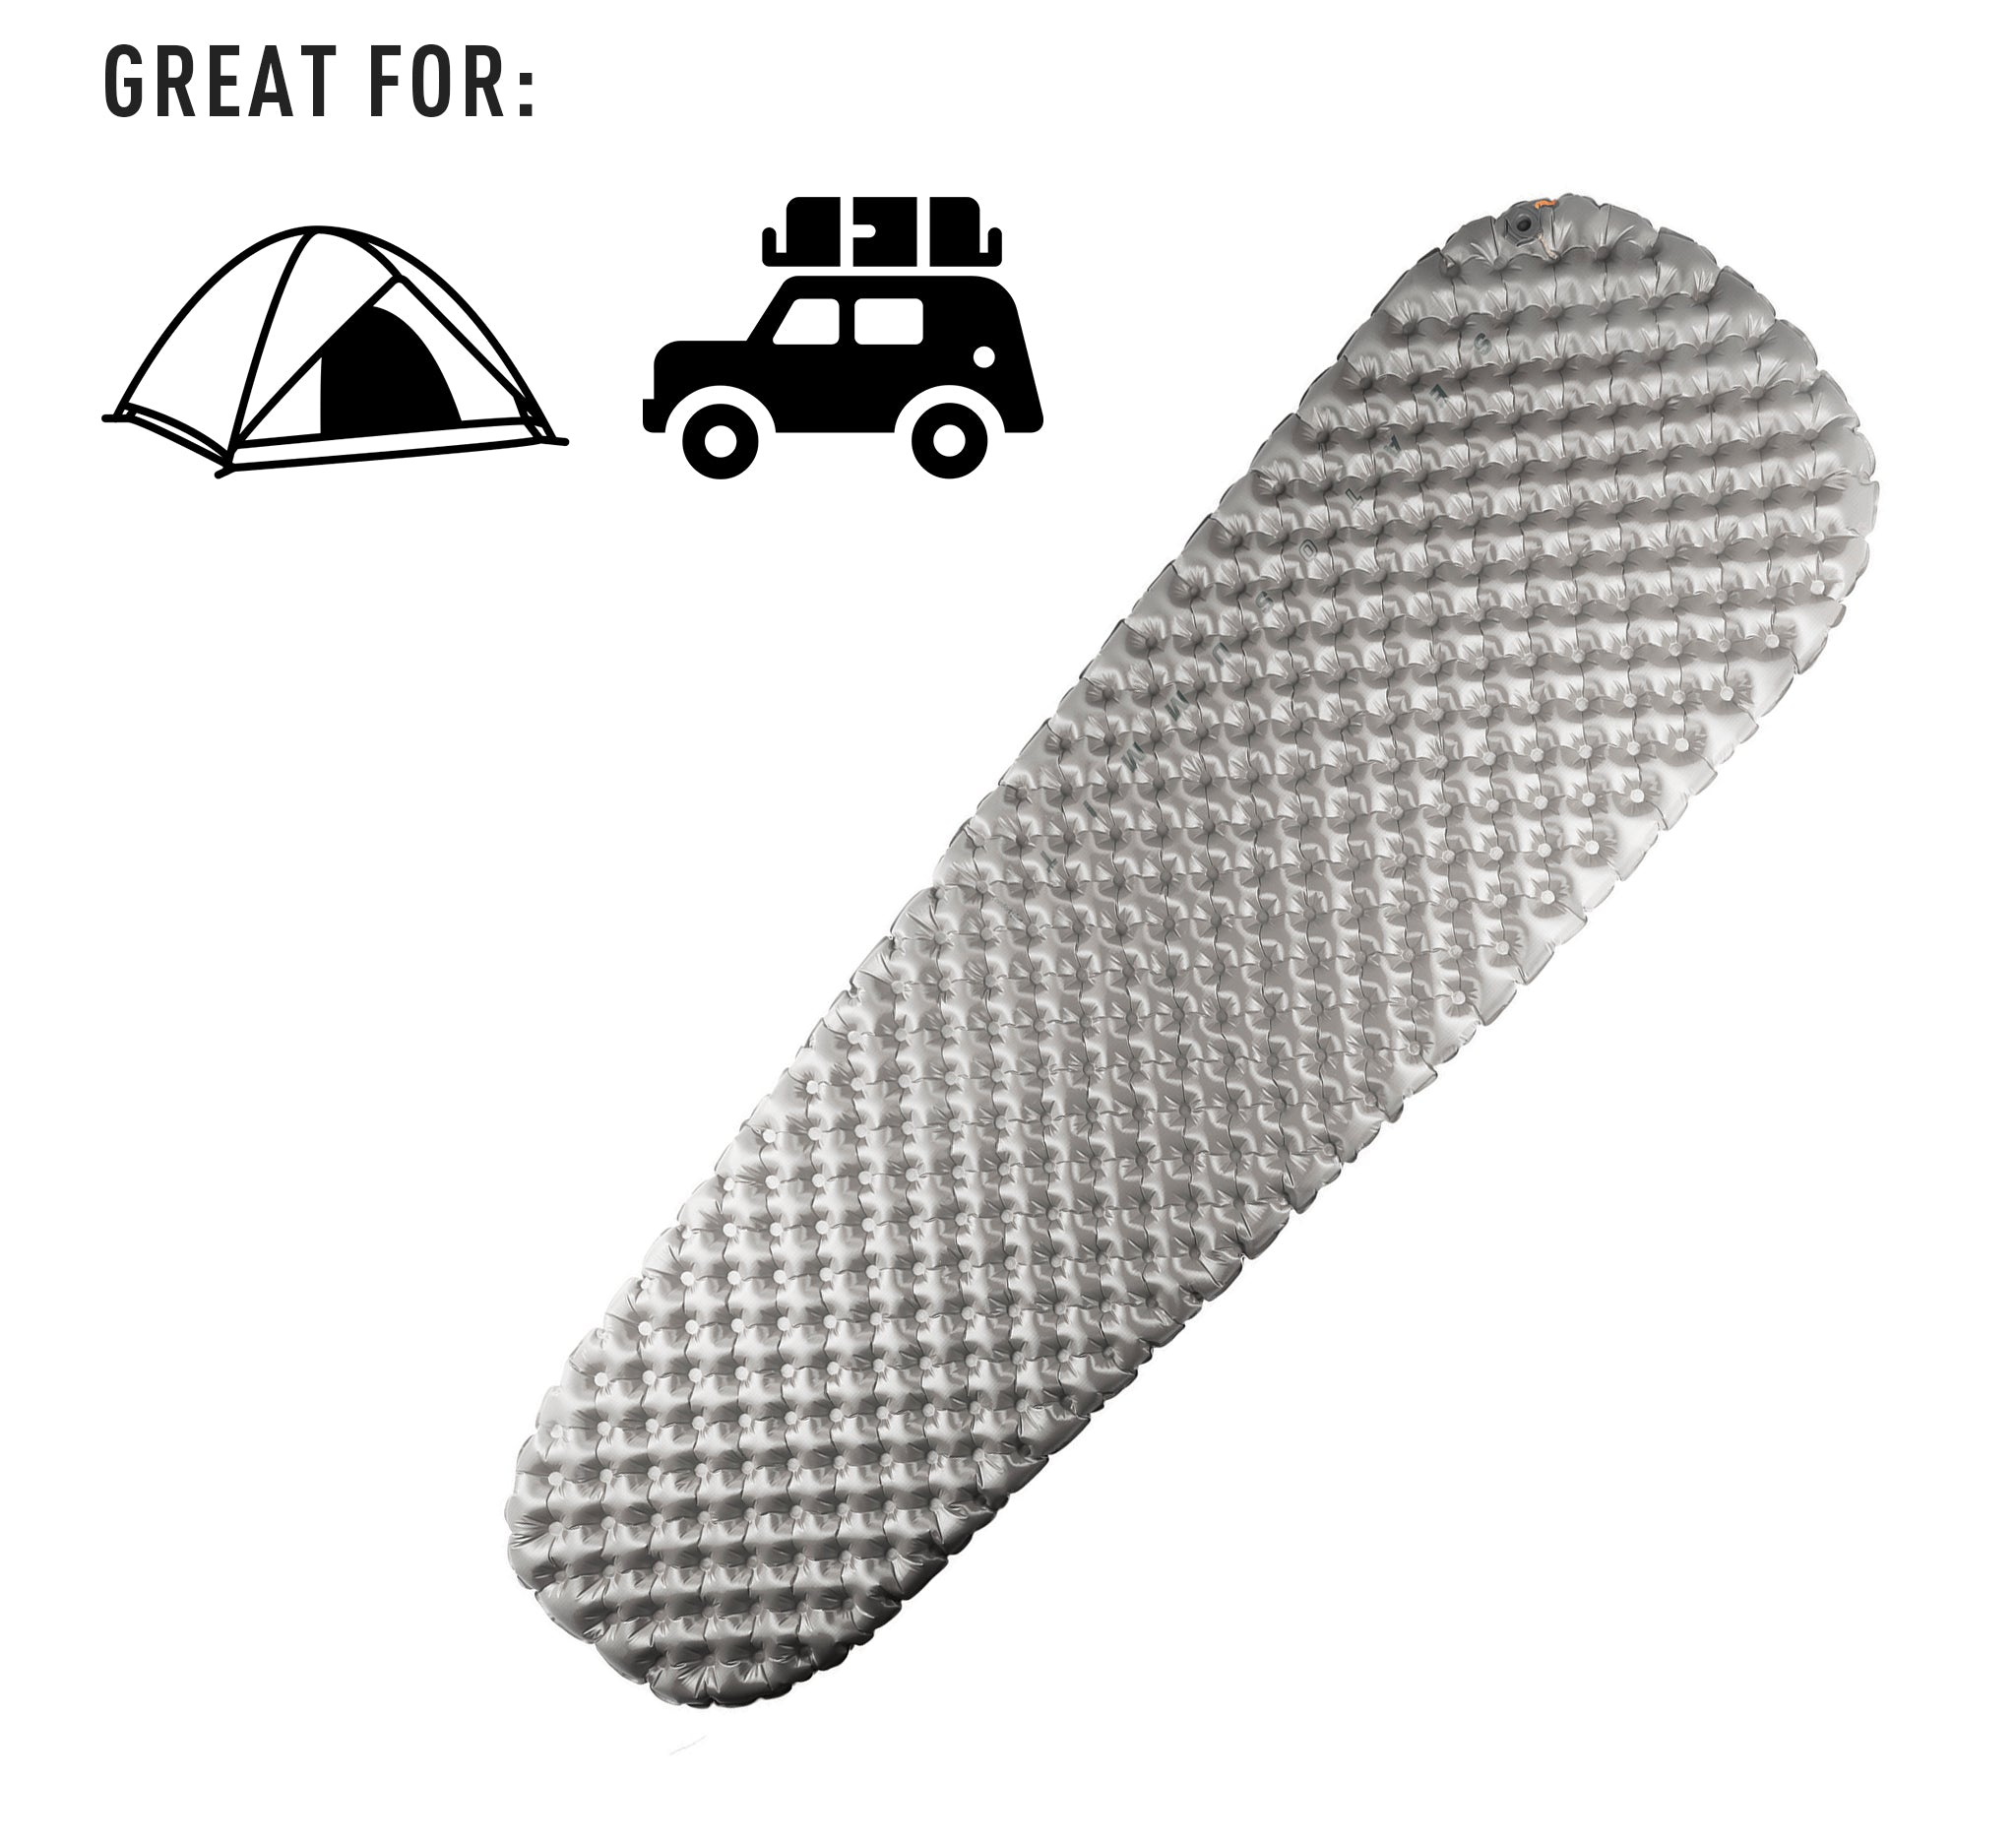 Editor's Choice award winner the Comfort Plus sleeping air mat pad